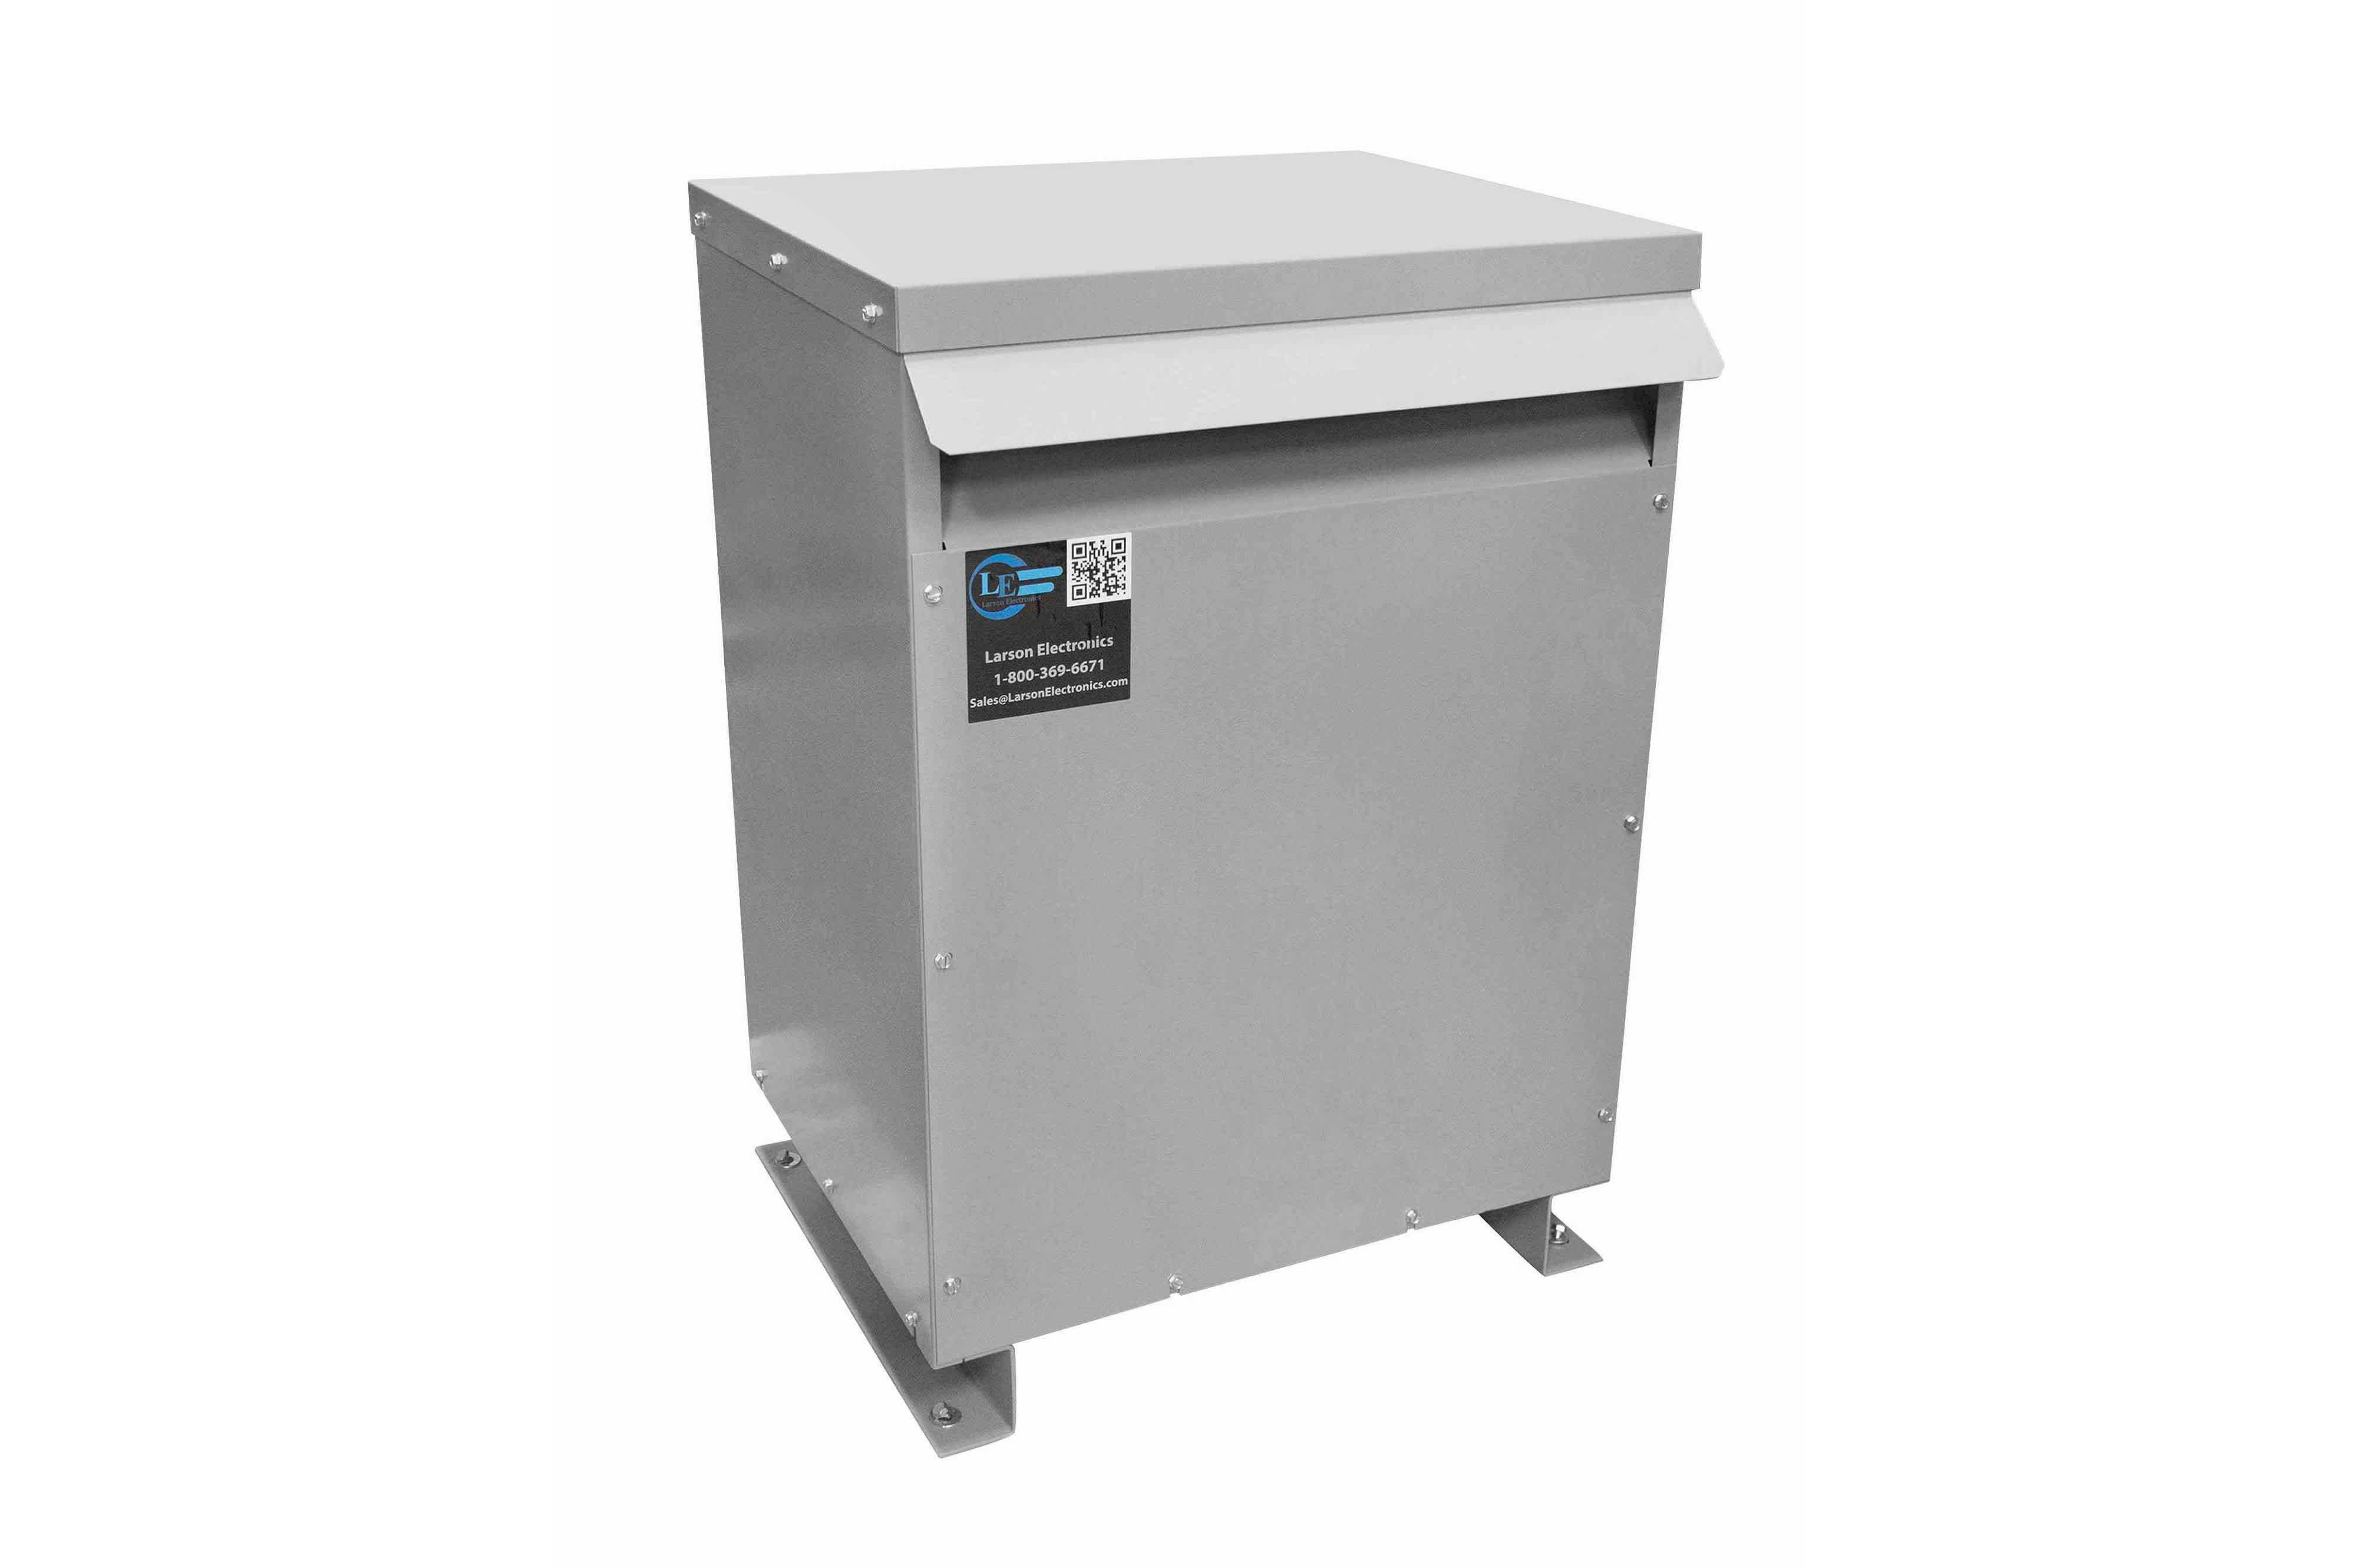 250 kVA 3PH Isolation Transformer, 460V Wye Primary, 400V Delta Secondary, N3R, Ventilated, 60 Hz